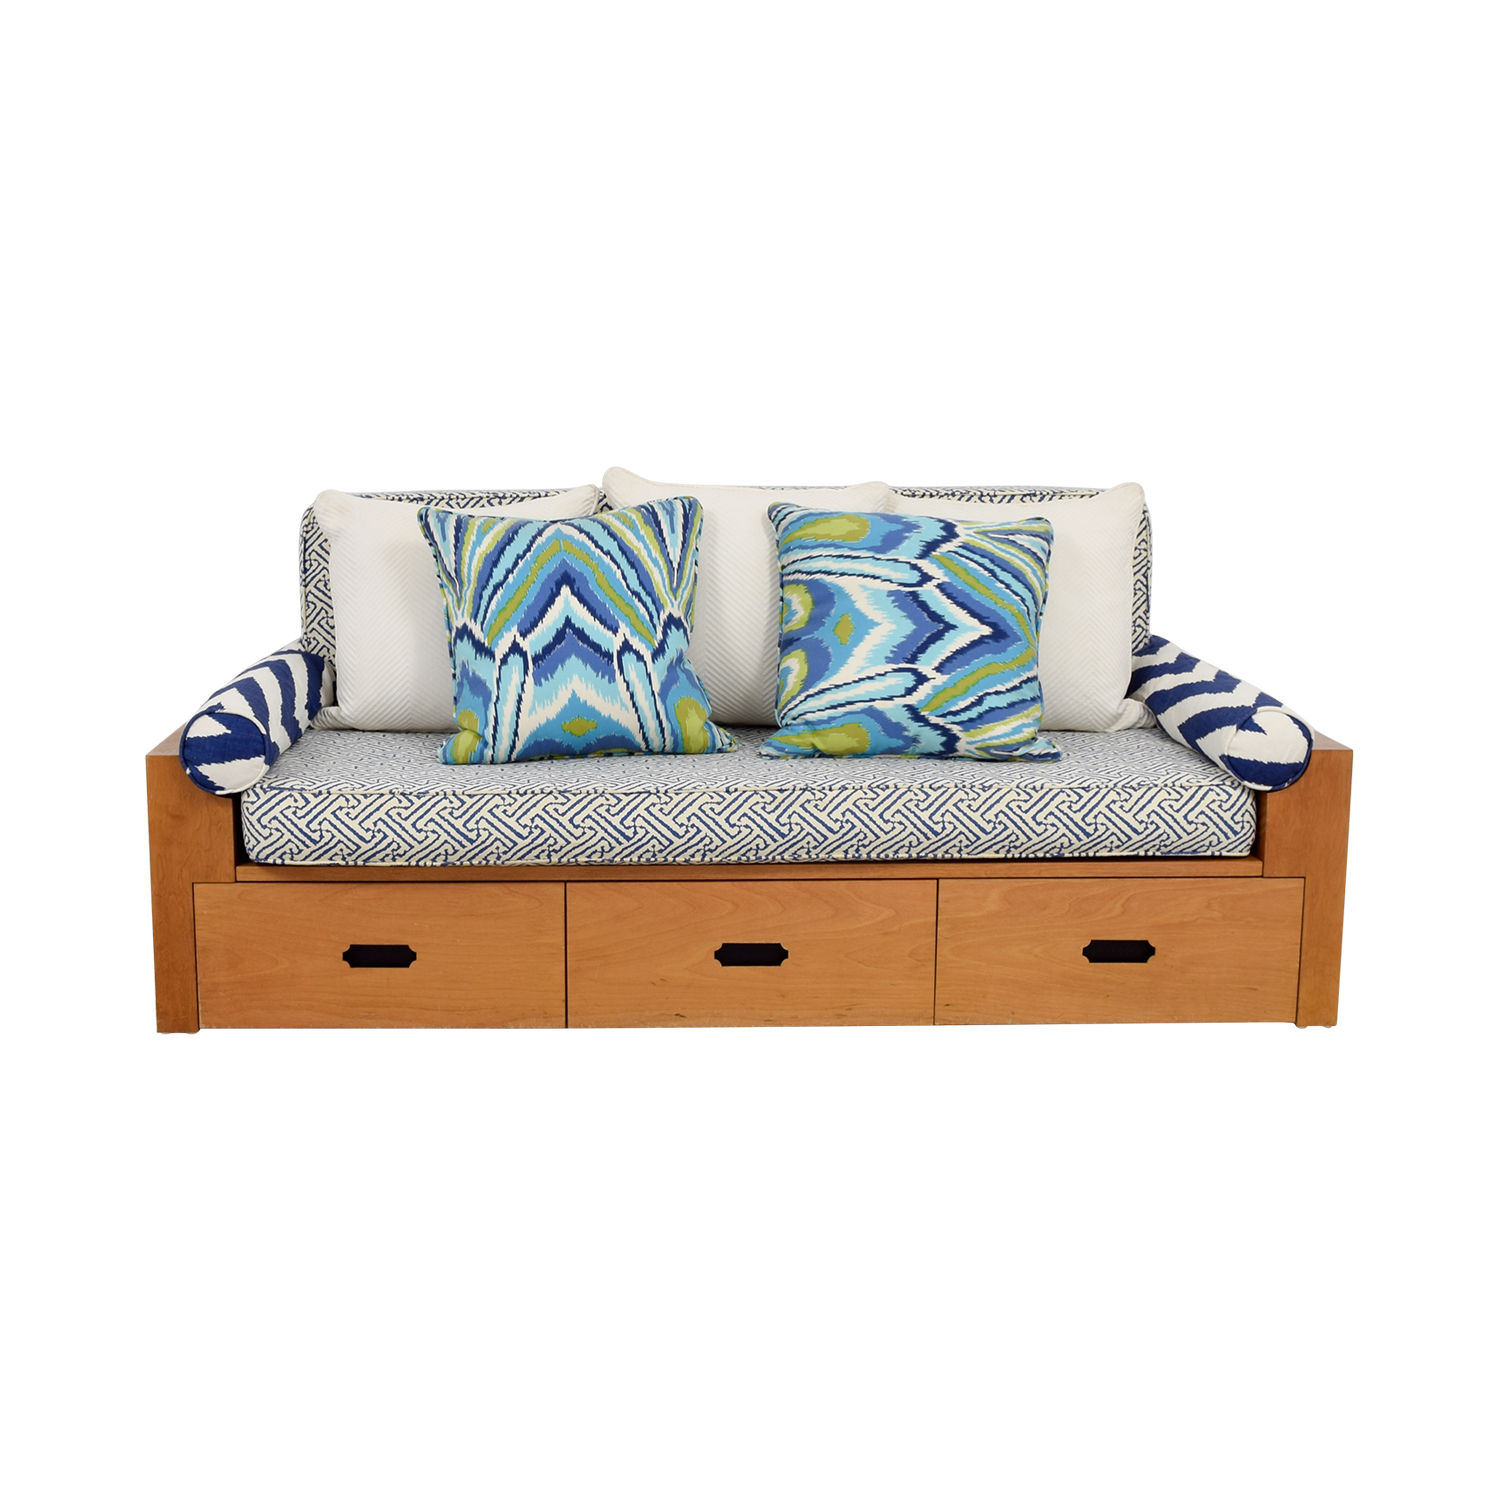 Custom Wood Daybed with Storage / Sofas